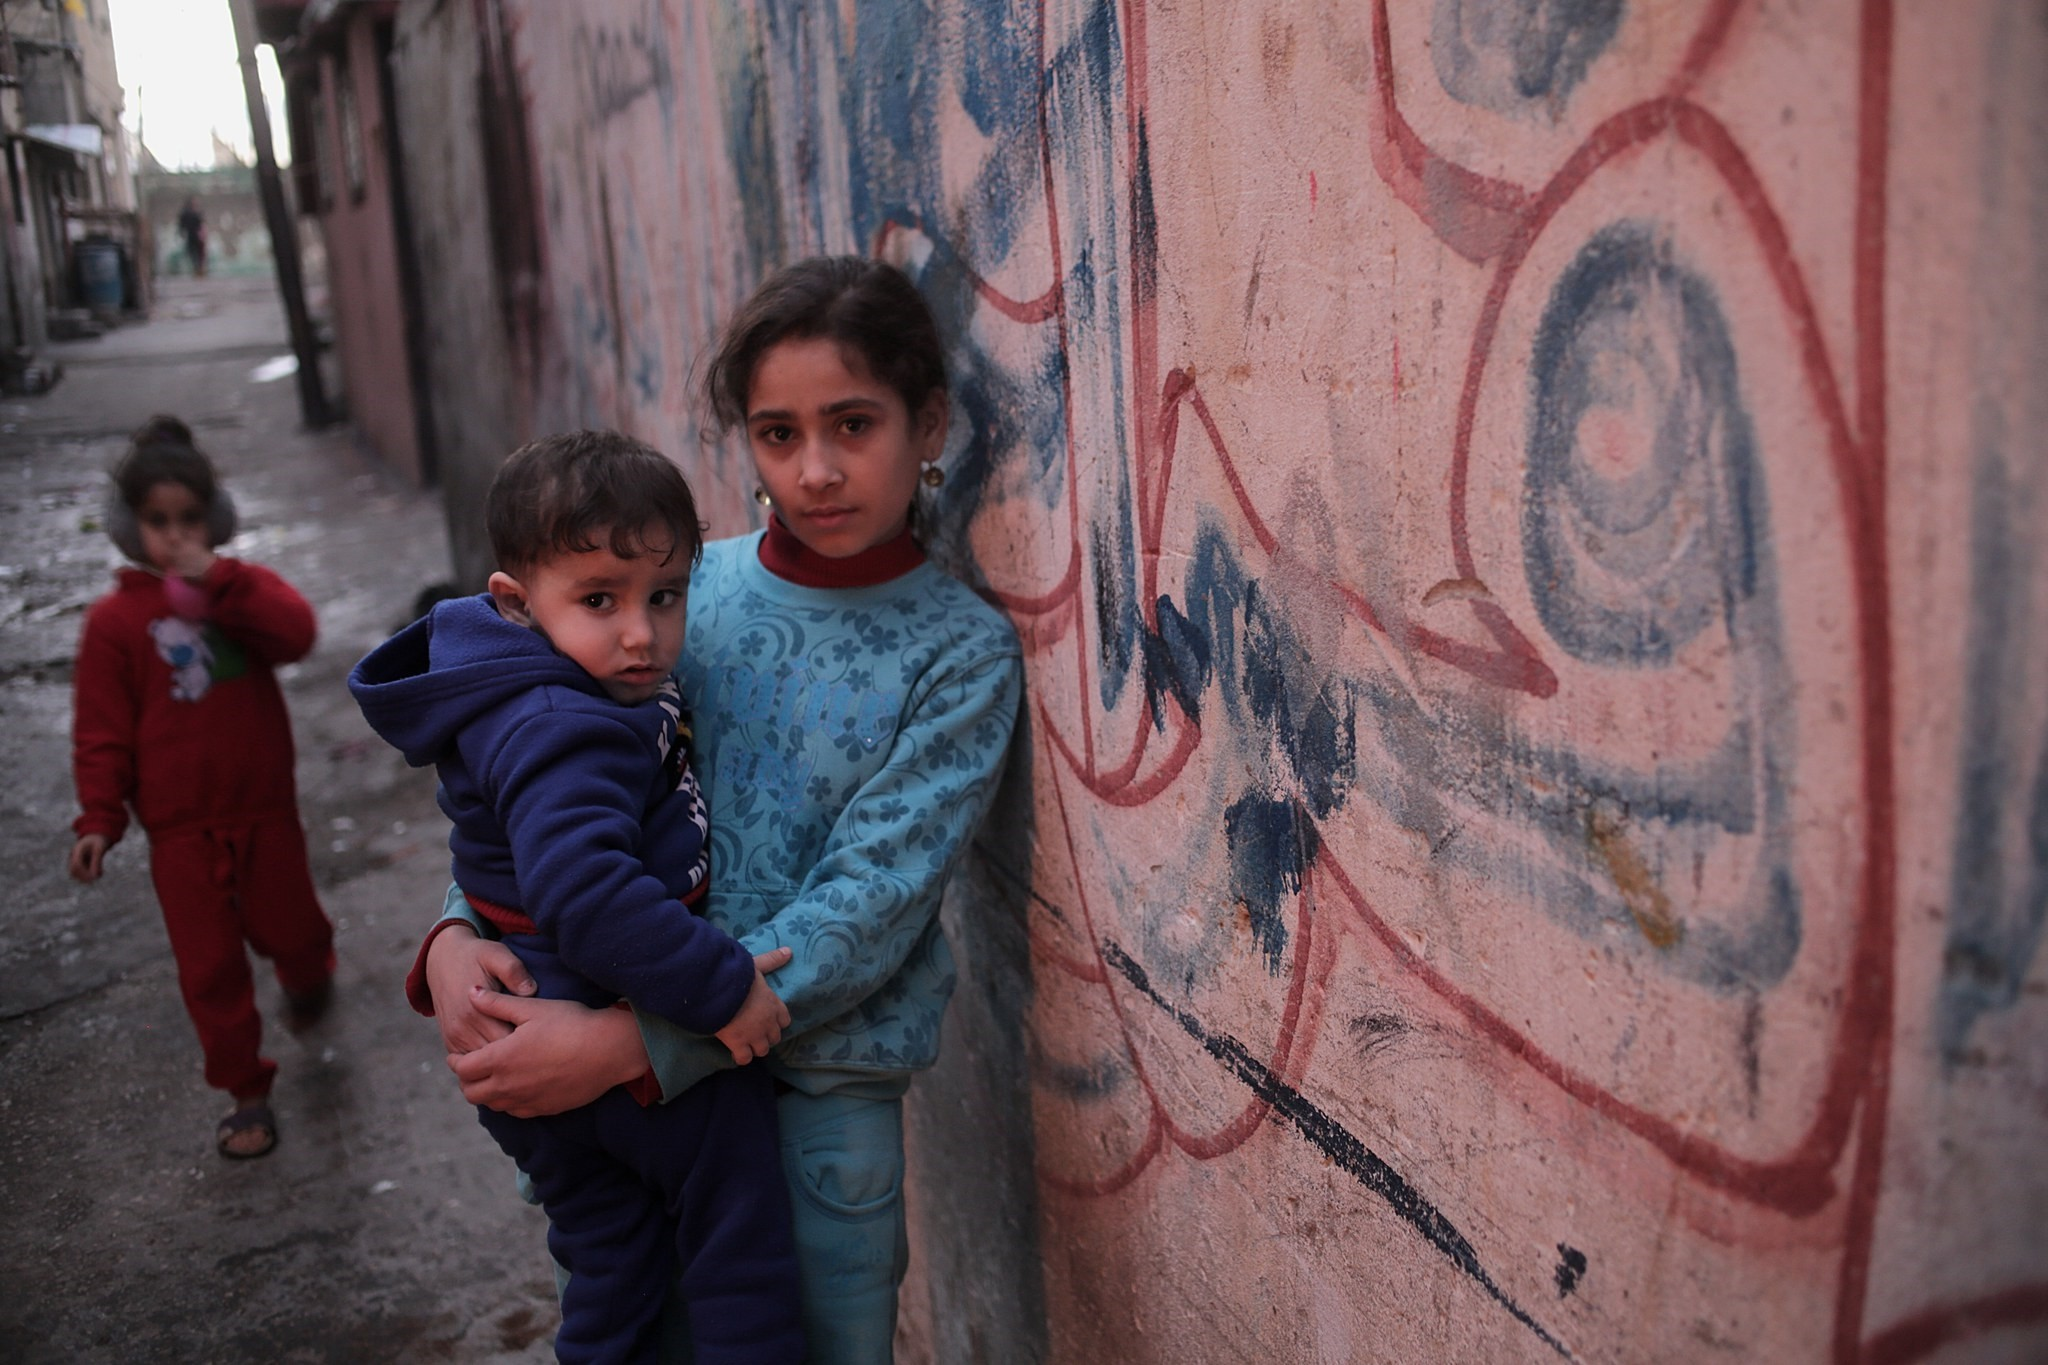 Palestinian refugees children play in the streets of al Shateaa refugee camp west northern Gaza City on January 17, 2018. (EPA Photo)